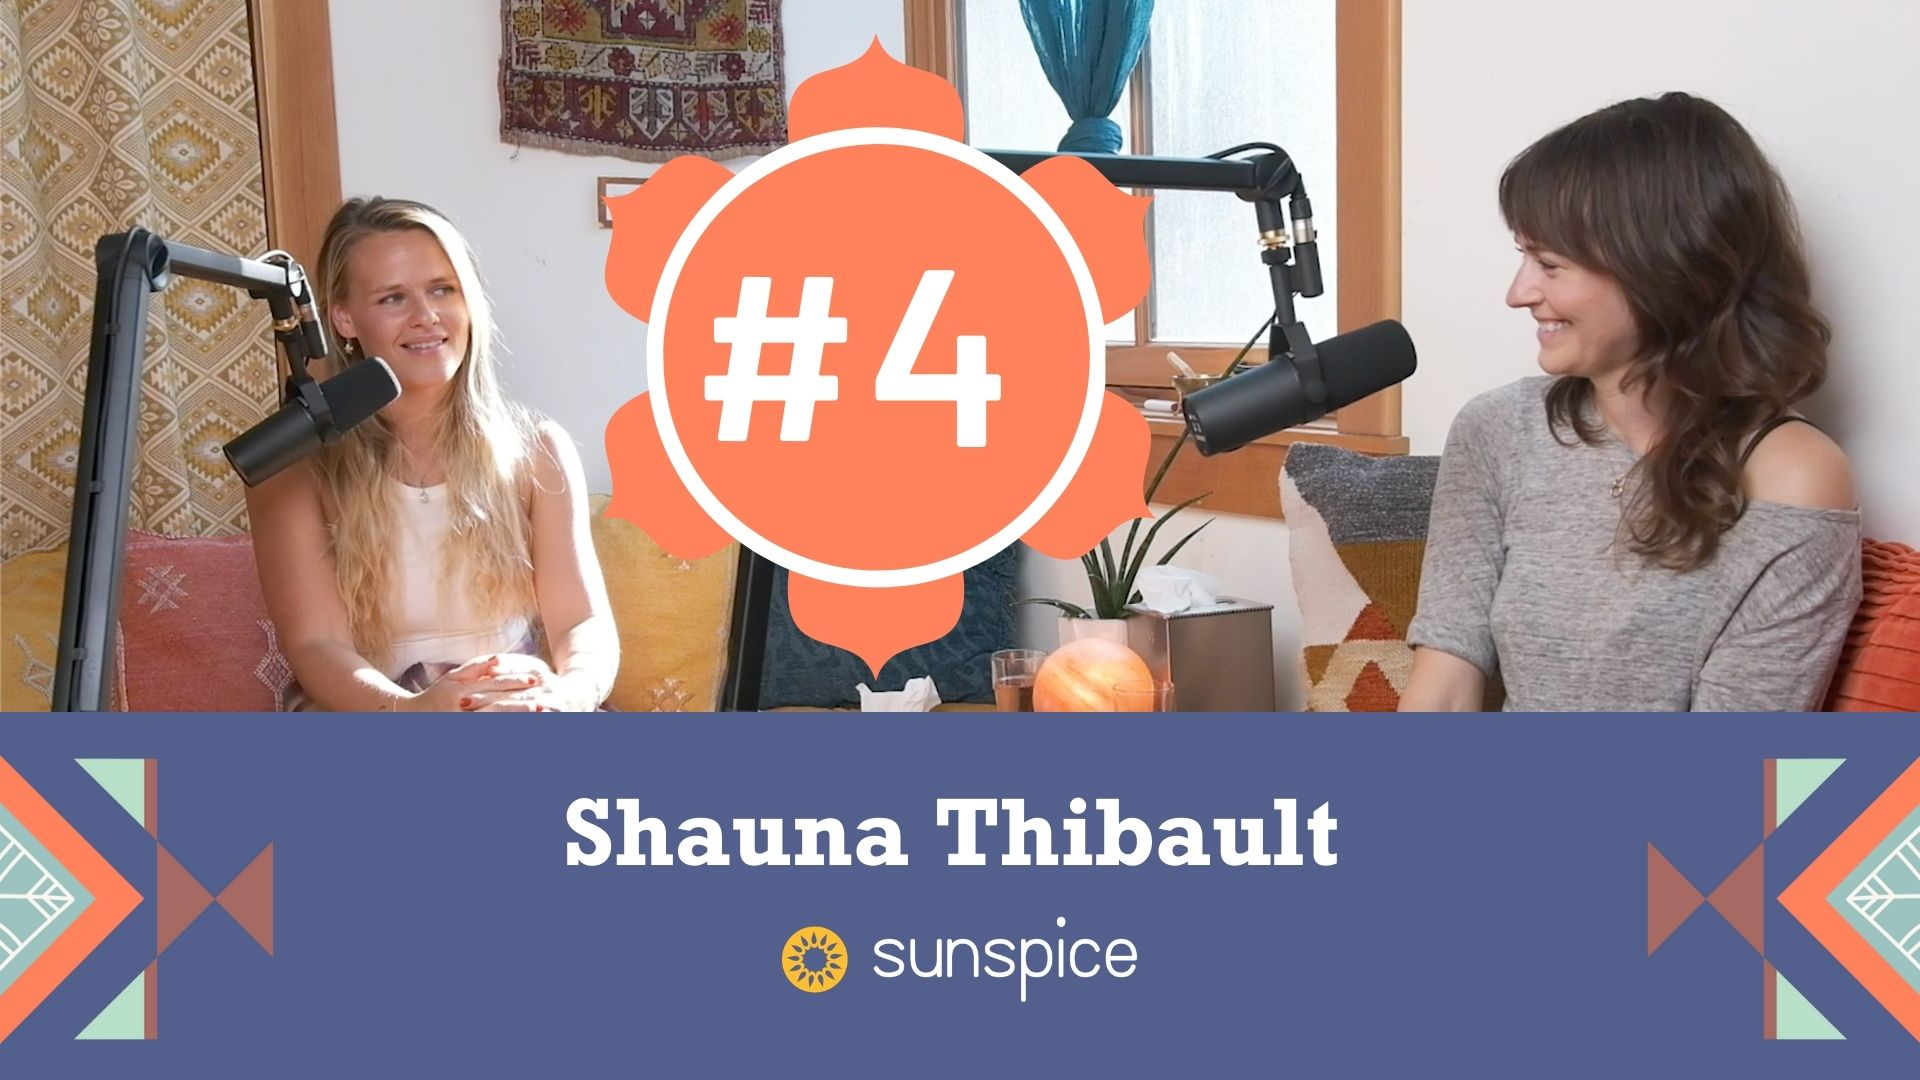 #4 Shauna Thibault: Everything Perfect, but Not